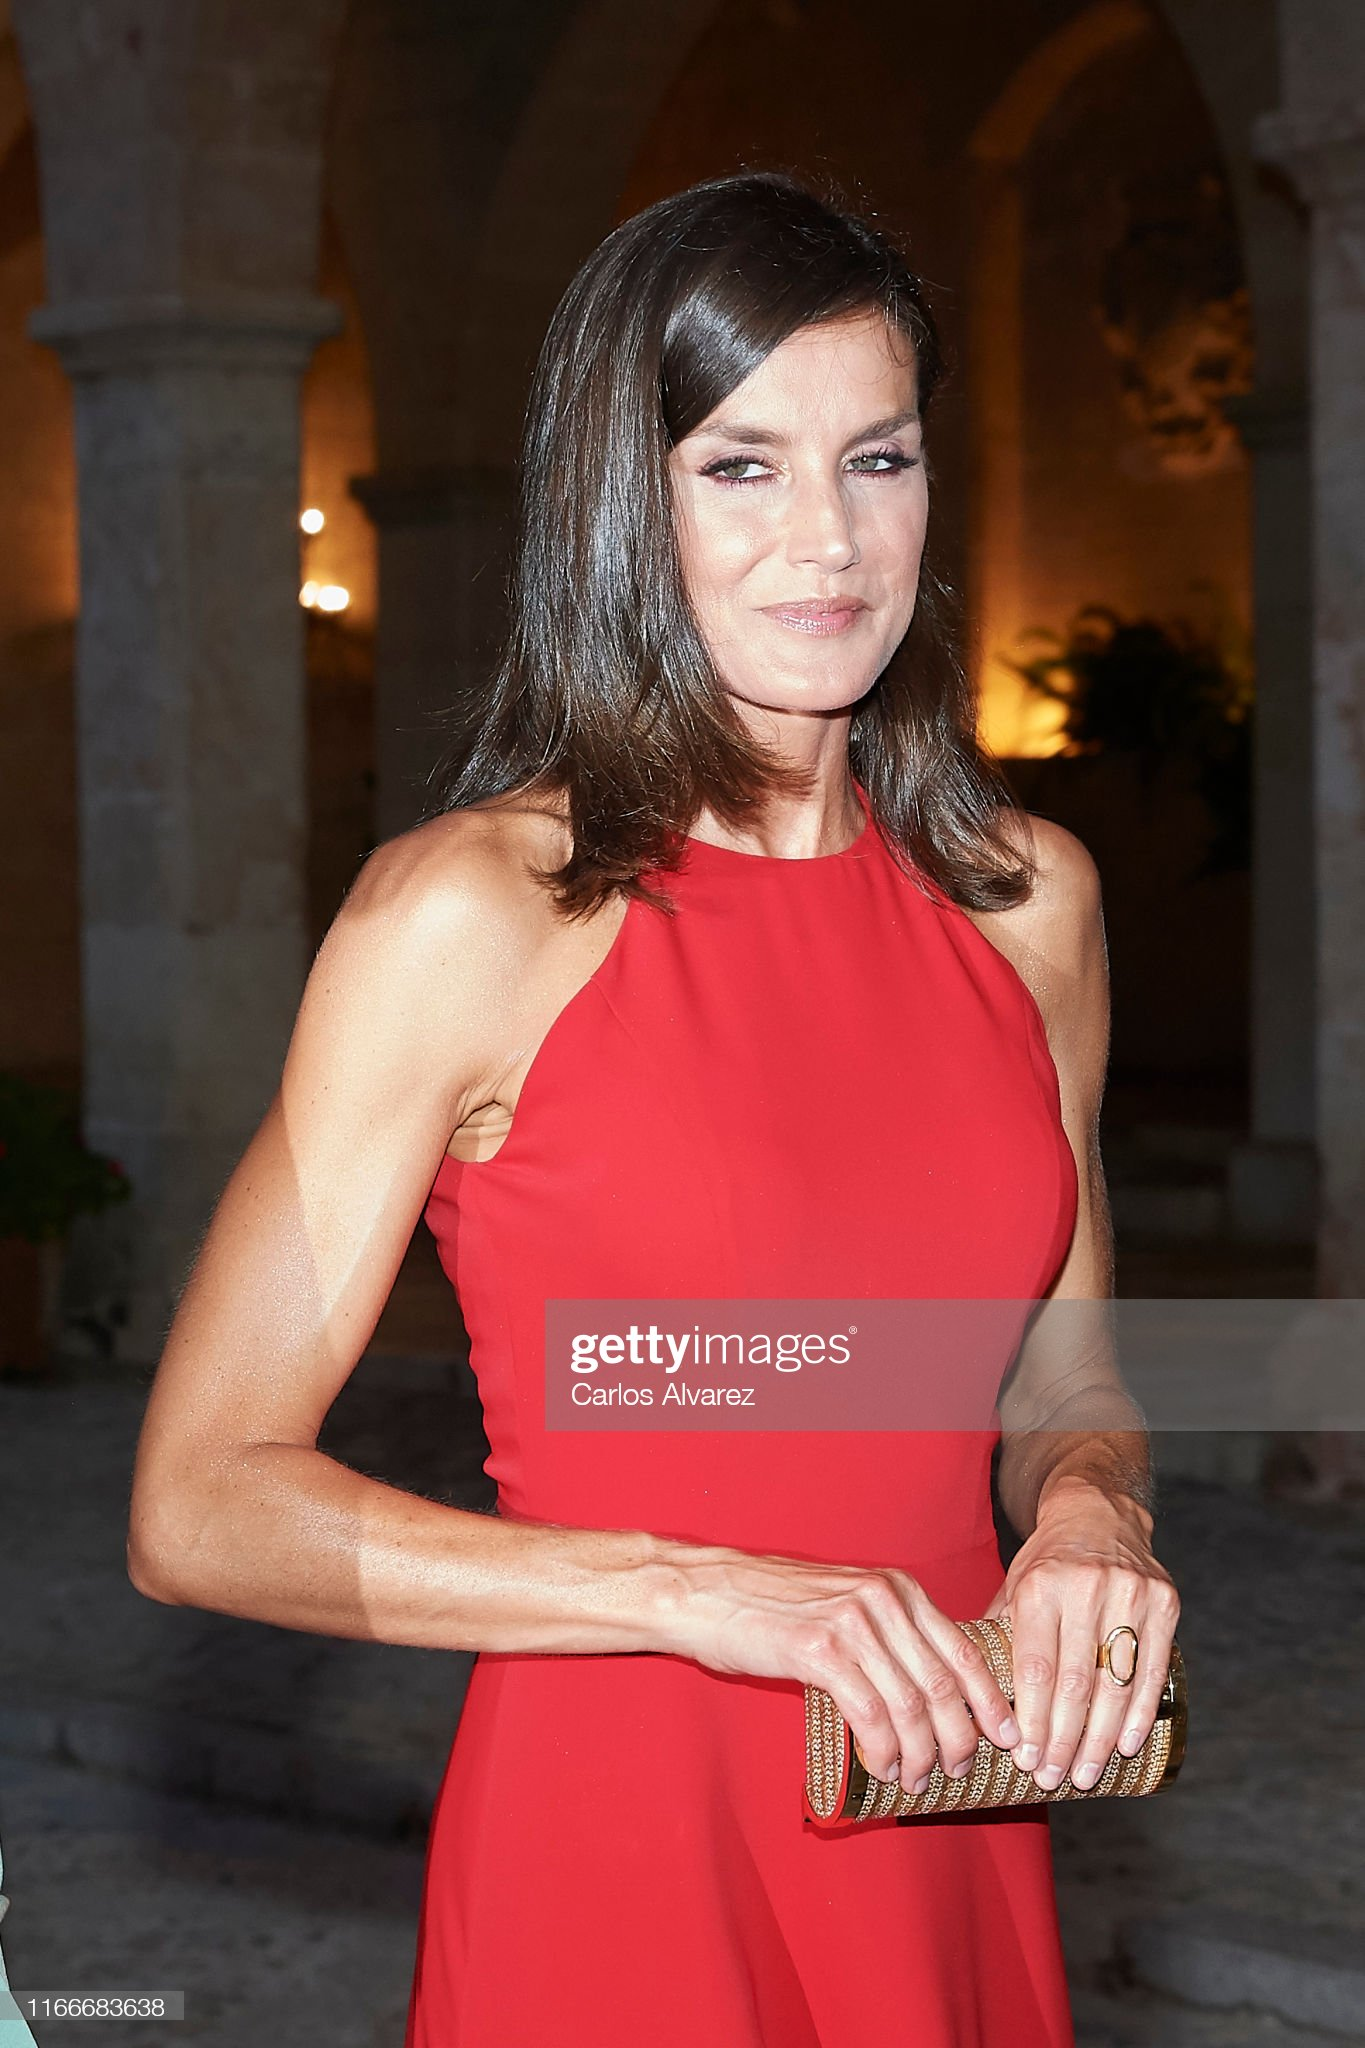 https://media.gettyimages.com/photos/queen-letizia-of-spain-hosts-a-dinner-for-authorities-at-the-palace-picture-id1166683638?s=2048x2048